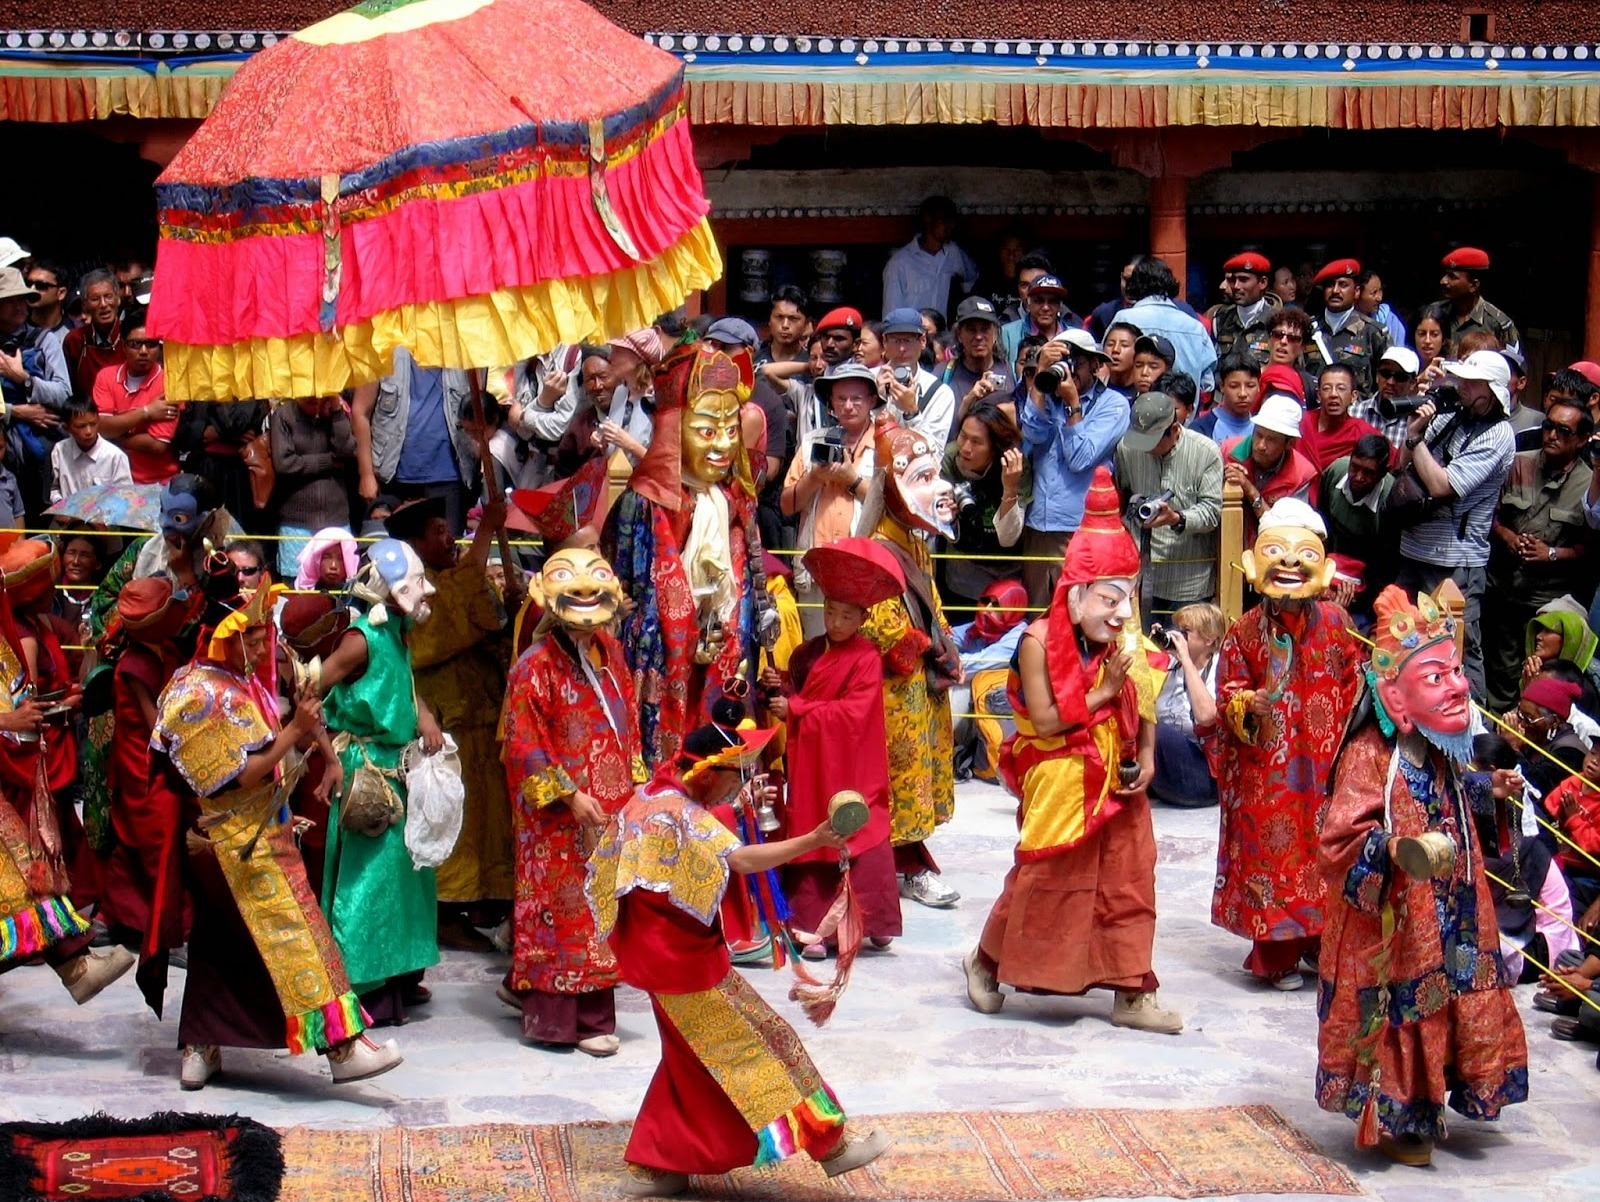 Hemis Festival, Leh, The Vibrant Celebration, Good over Evil, Leh Laddakh, The Ladakhi Hemis festival, Hemis Monastery at Leh